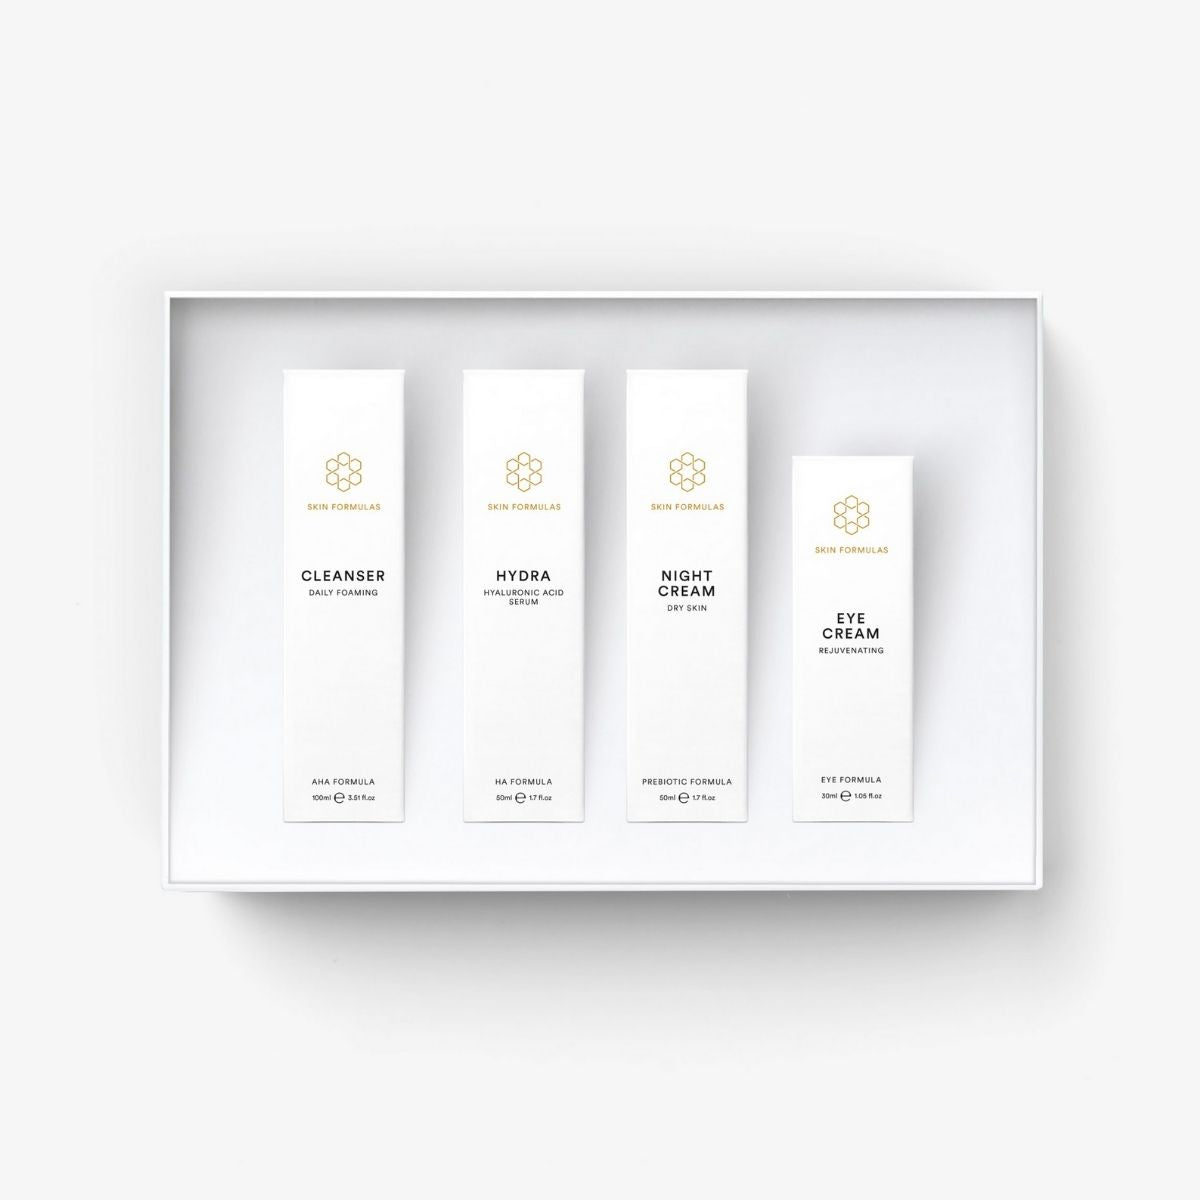 Skin Formulas Luxurious Essentials Set - Normal To Dry Skin - Daily Foaming Cleanser, Hydra, Night & Eye